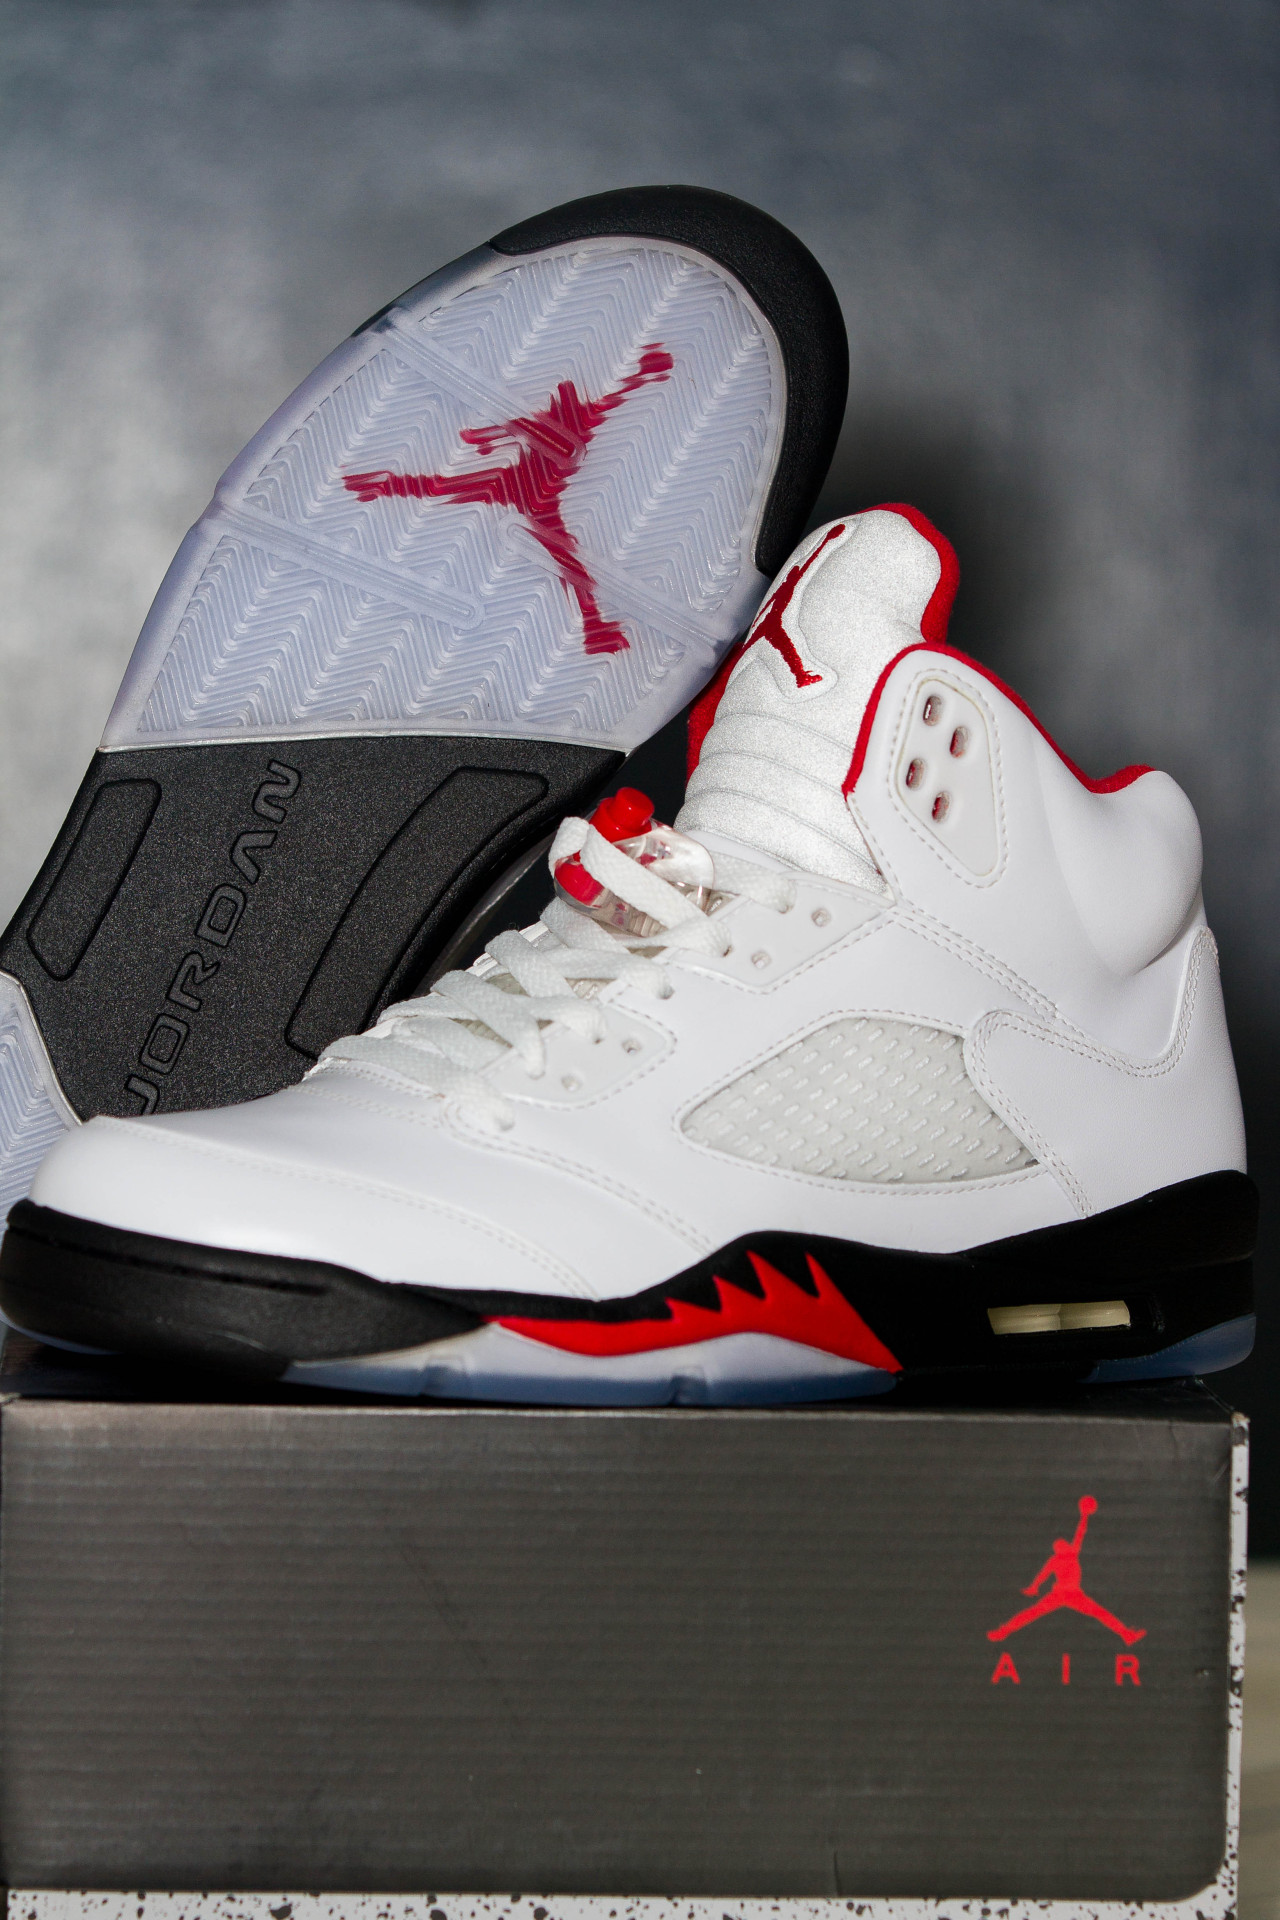 Air Jordan Retro V | Fire Red | January 2013